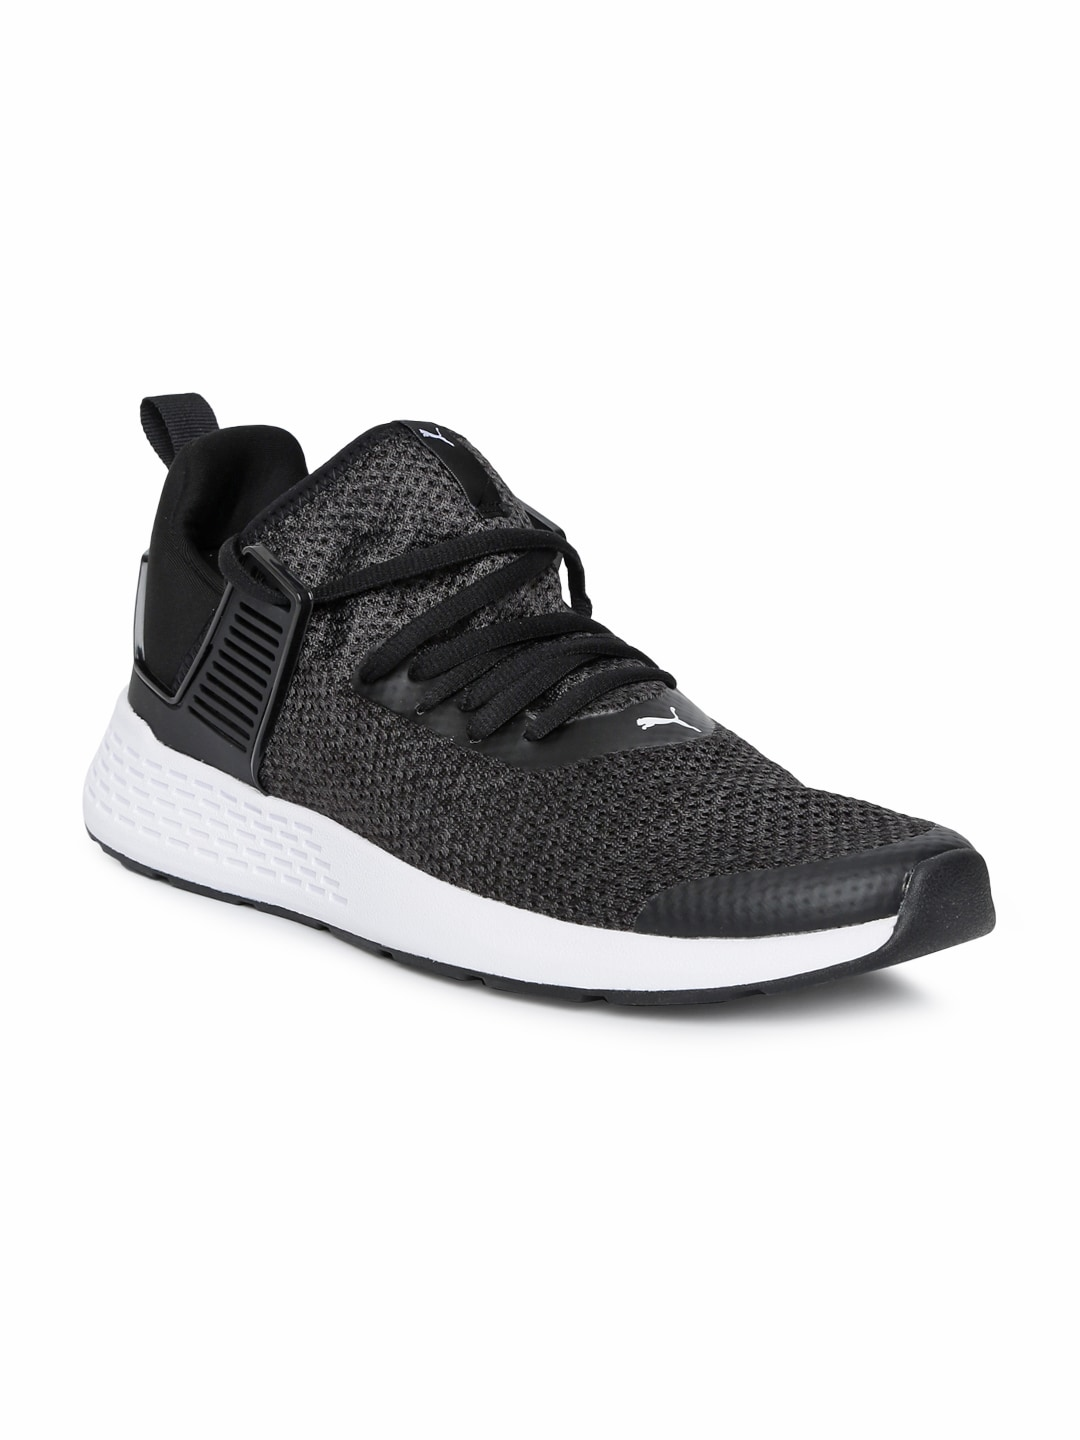 newest 84702 000d3 Puma Shoes - Buy Puma Shoes for Men   Women Online in India